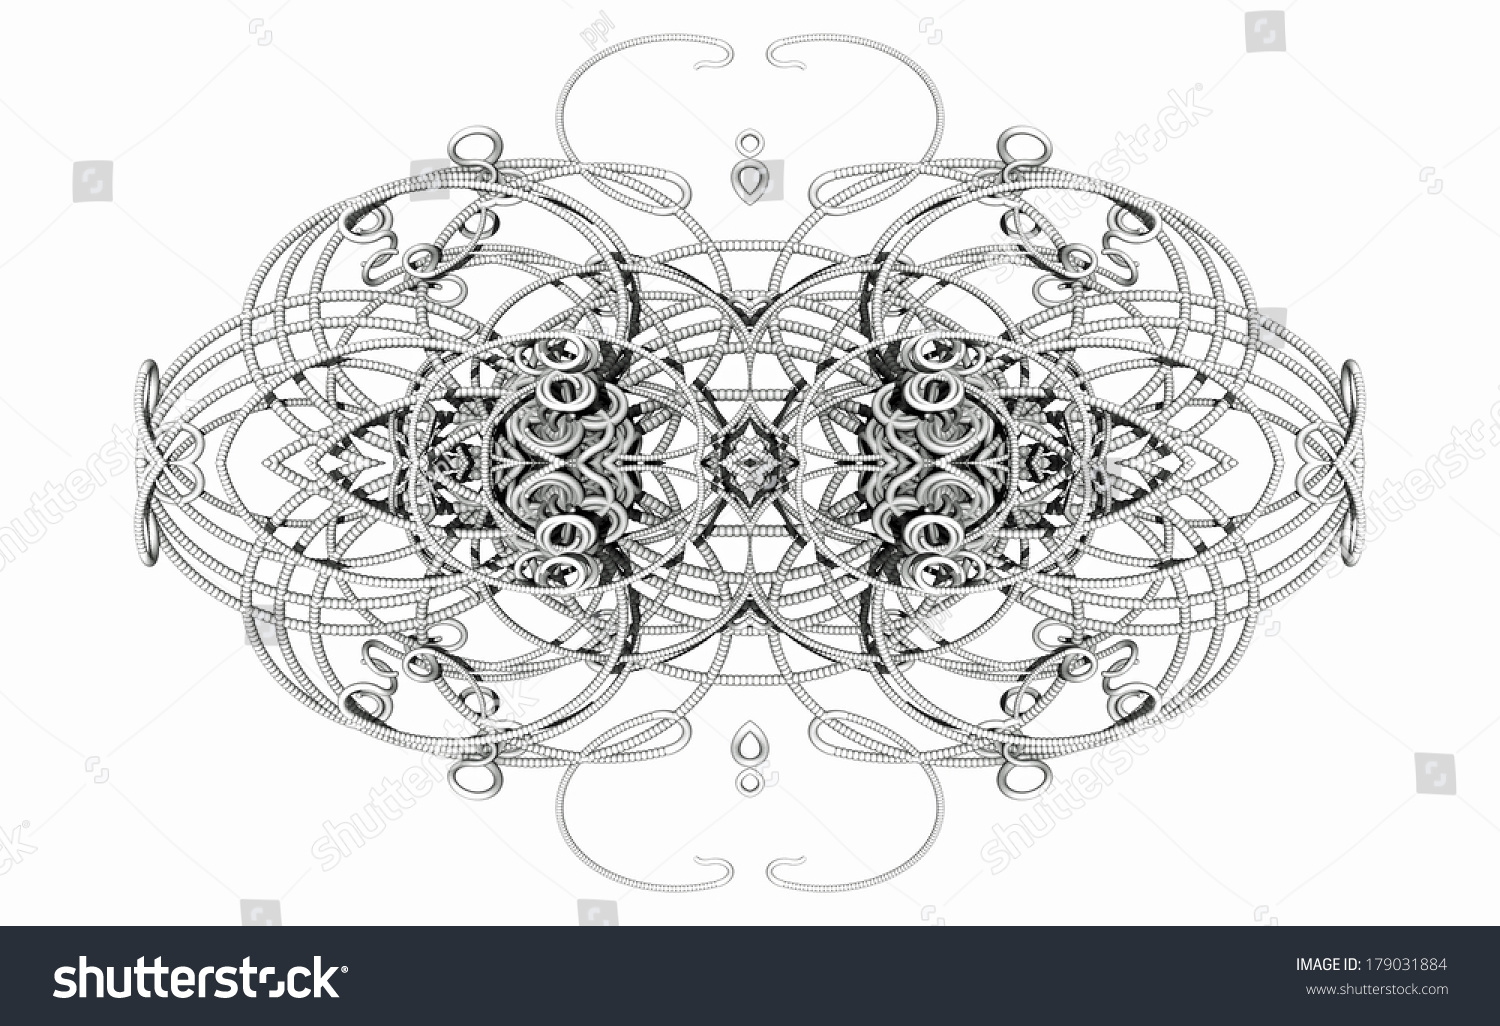 pattern fractal stock illustration 179031884 shutterstock